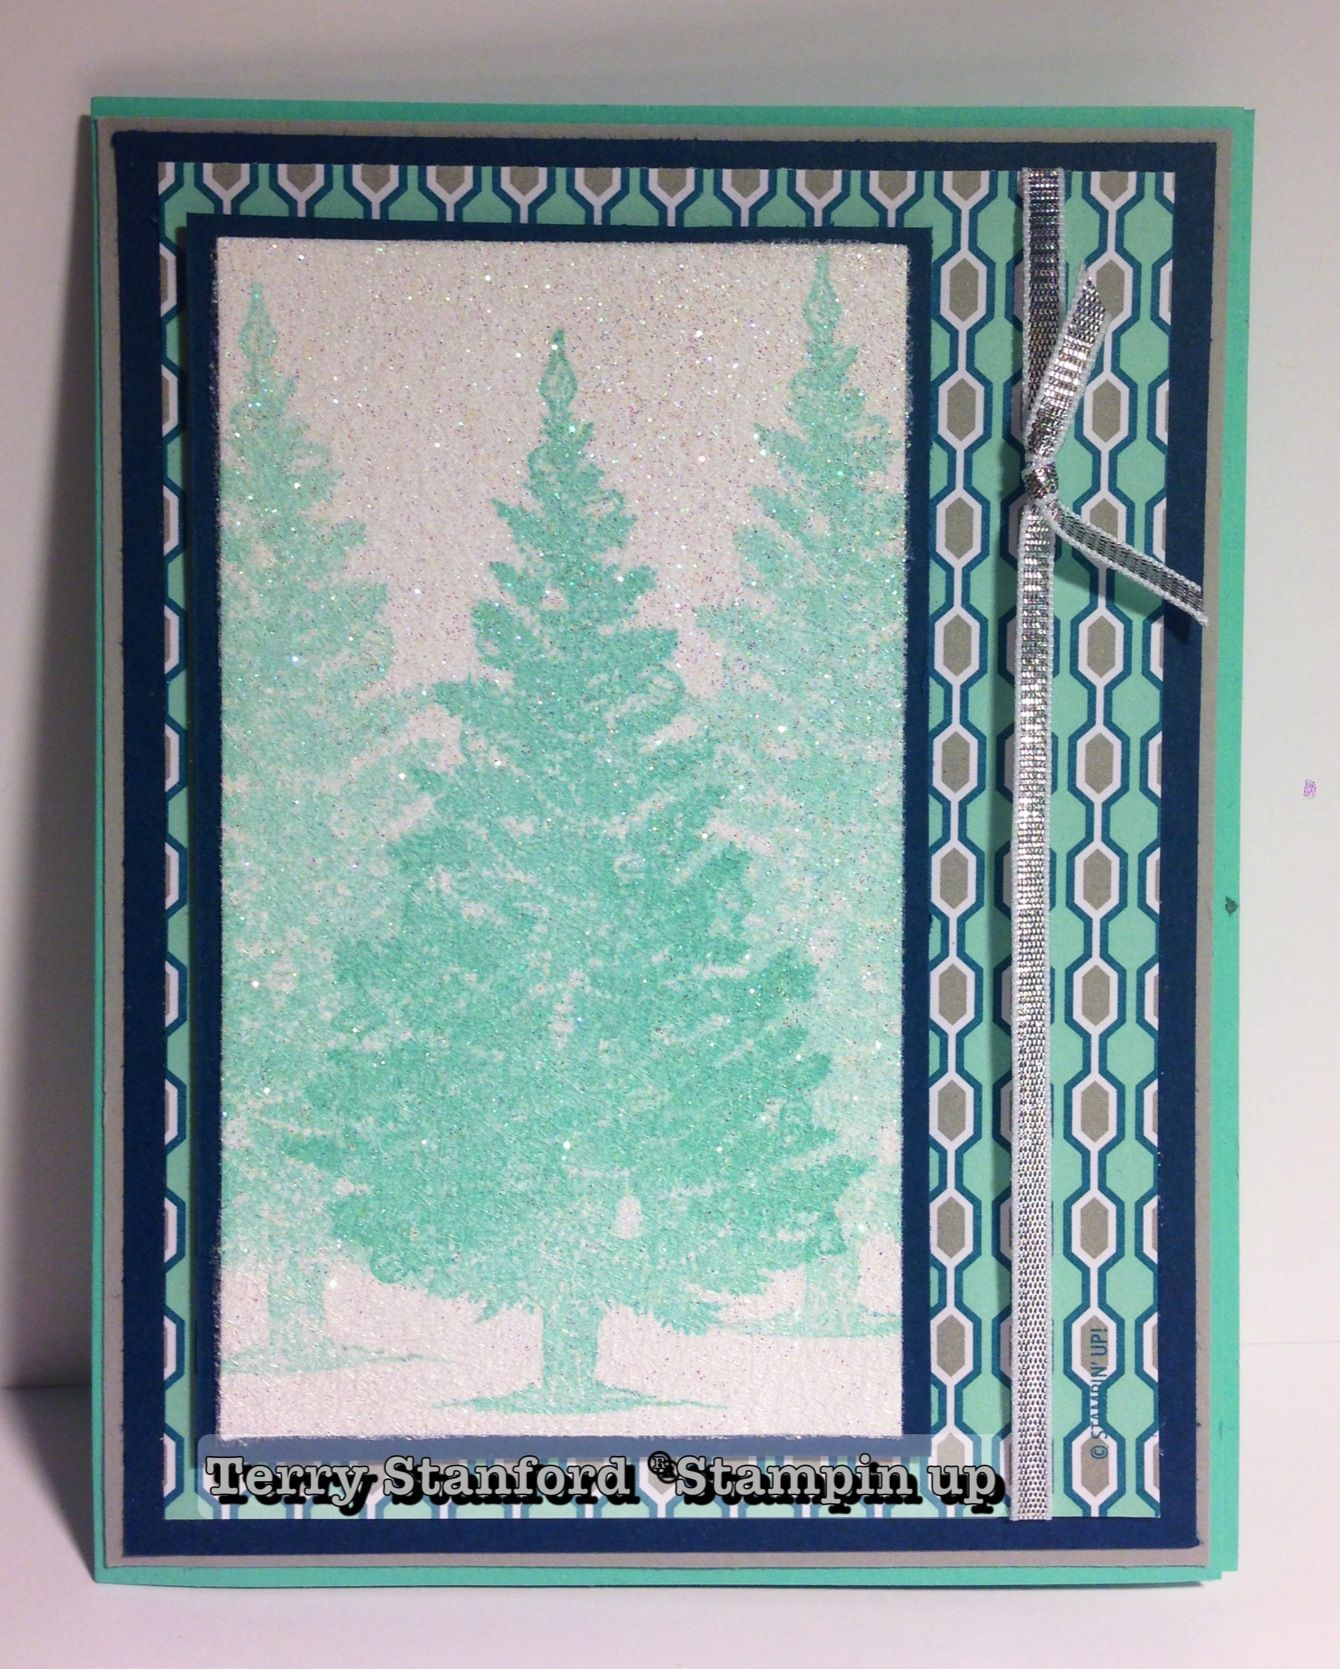 2013 Stampin Up Convention Swap.